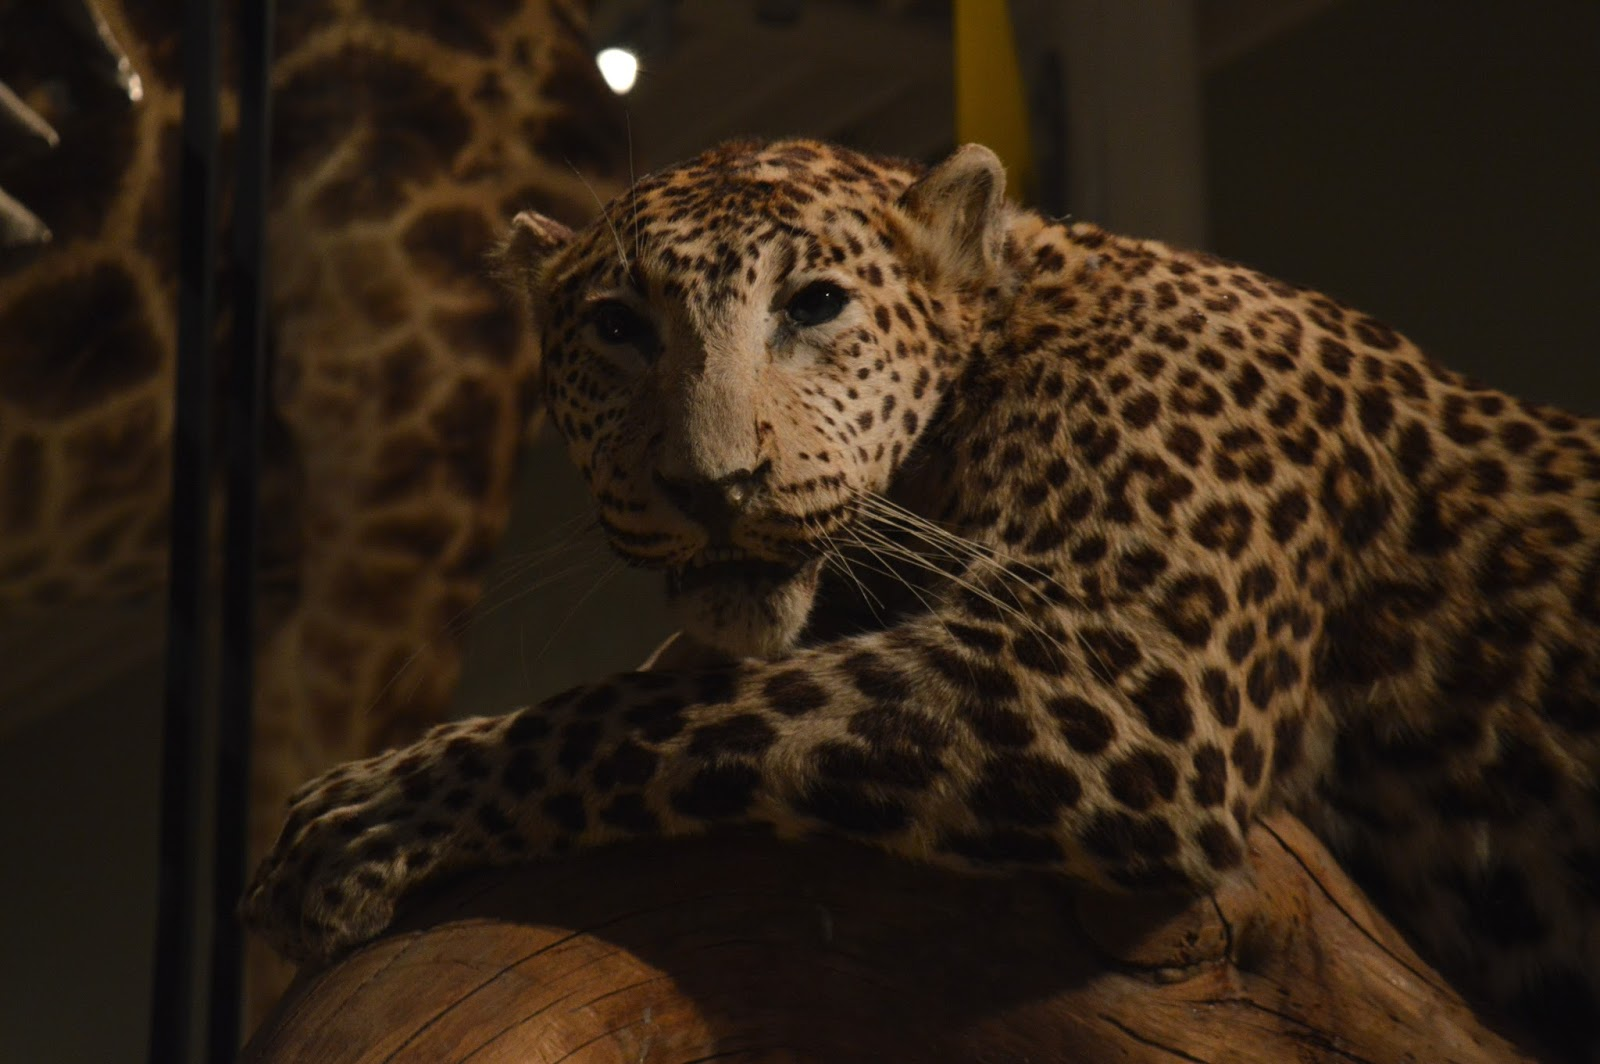 The National Museum of Scotland Leopard